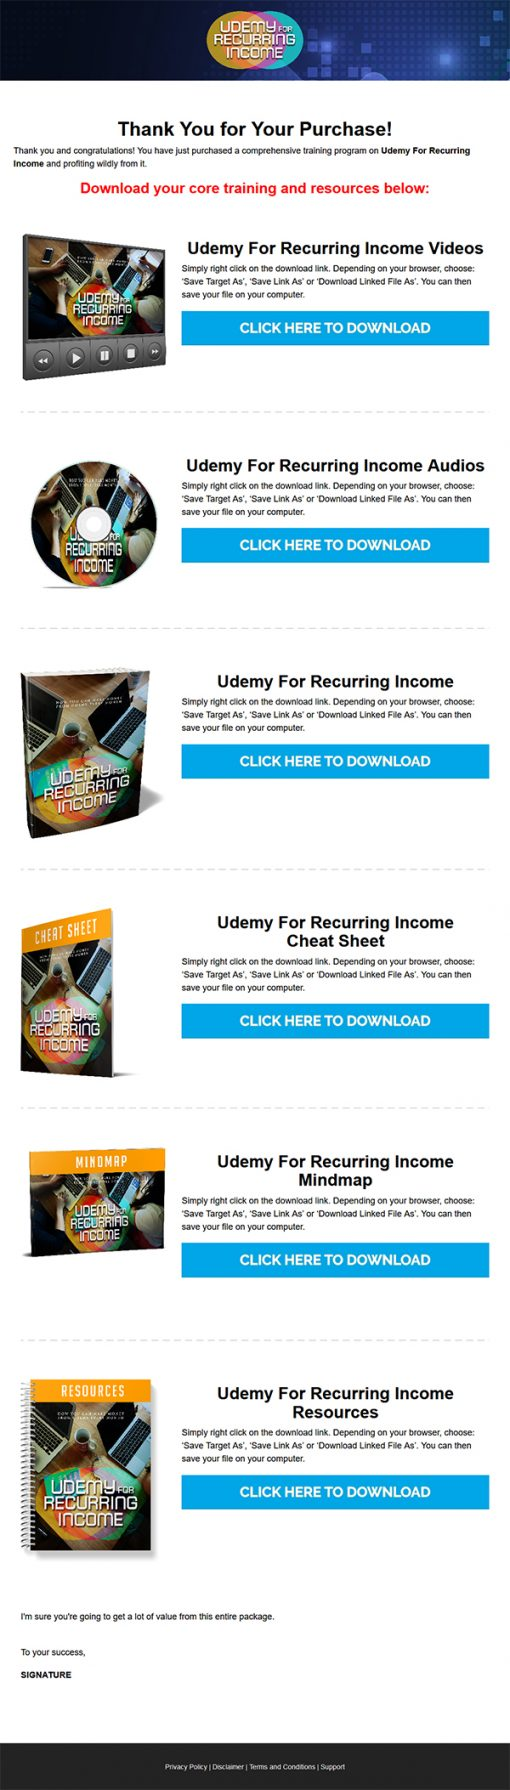 Udemy for Recurring Income Ebook and Videos MRR